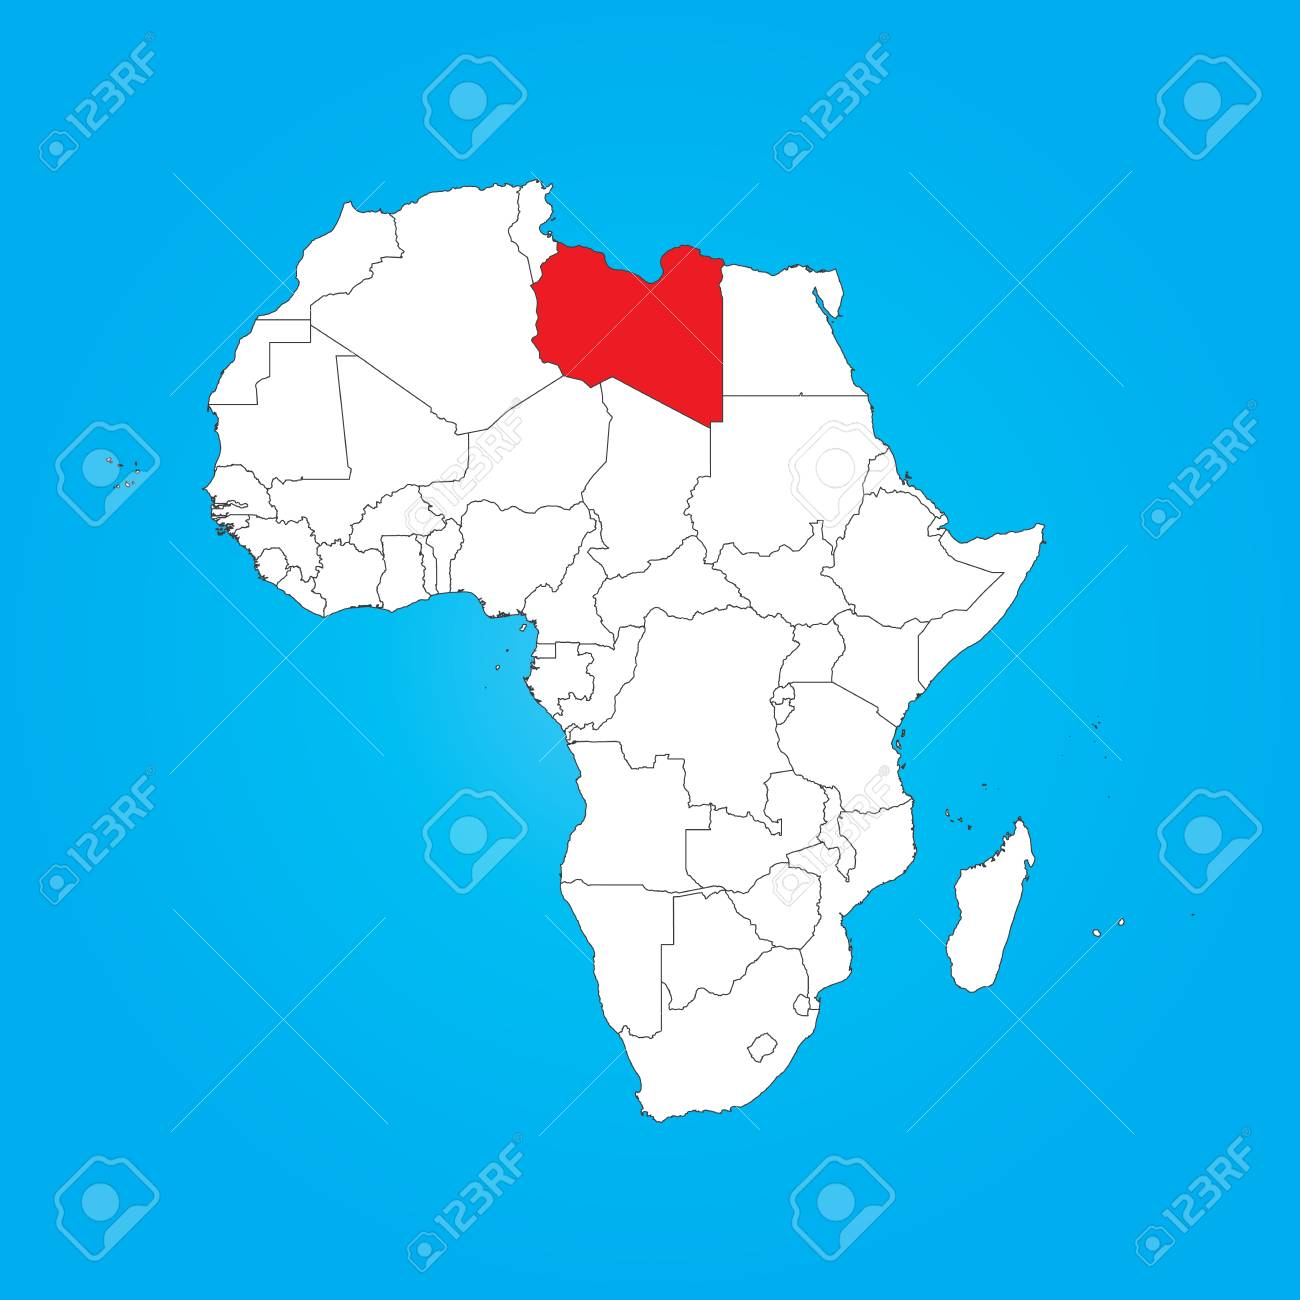 A Map Of Africa With A Selected Country Of Libya Stock Photo